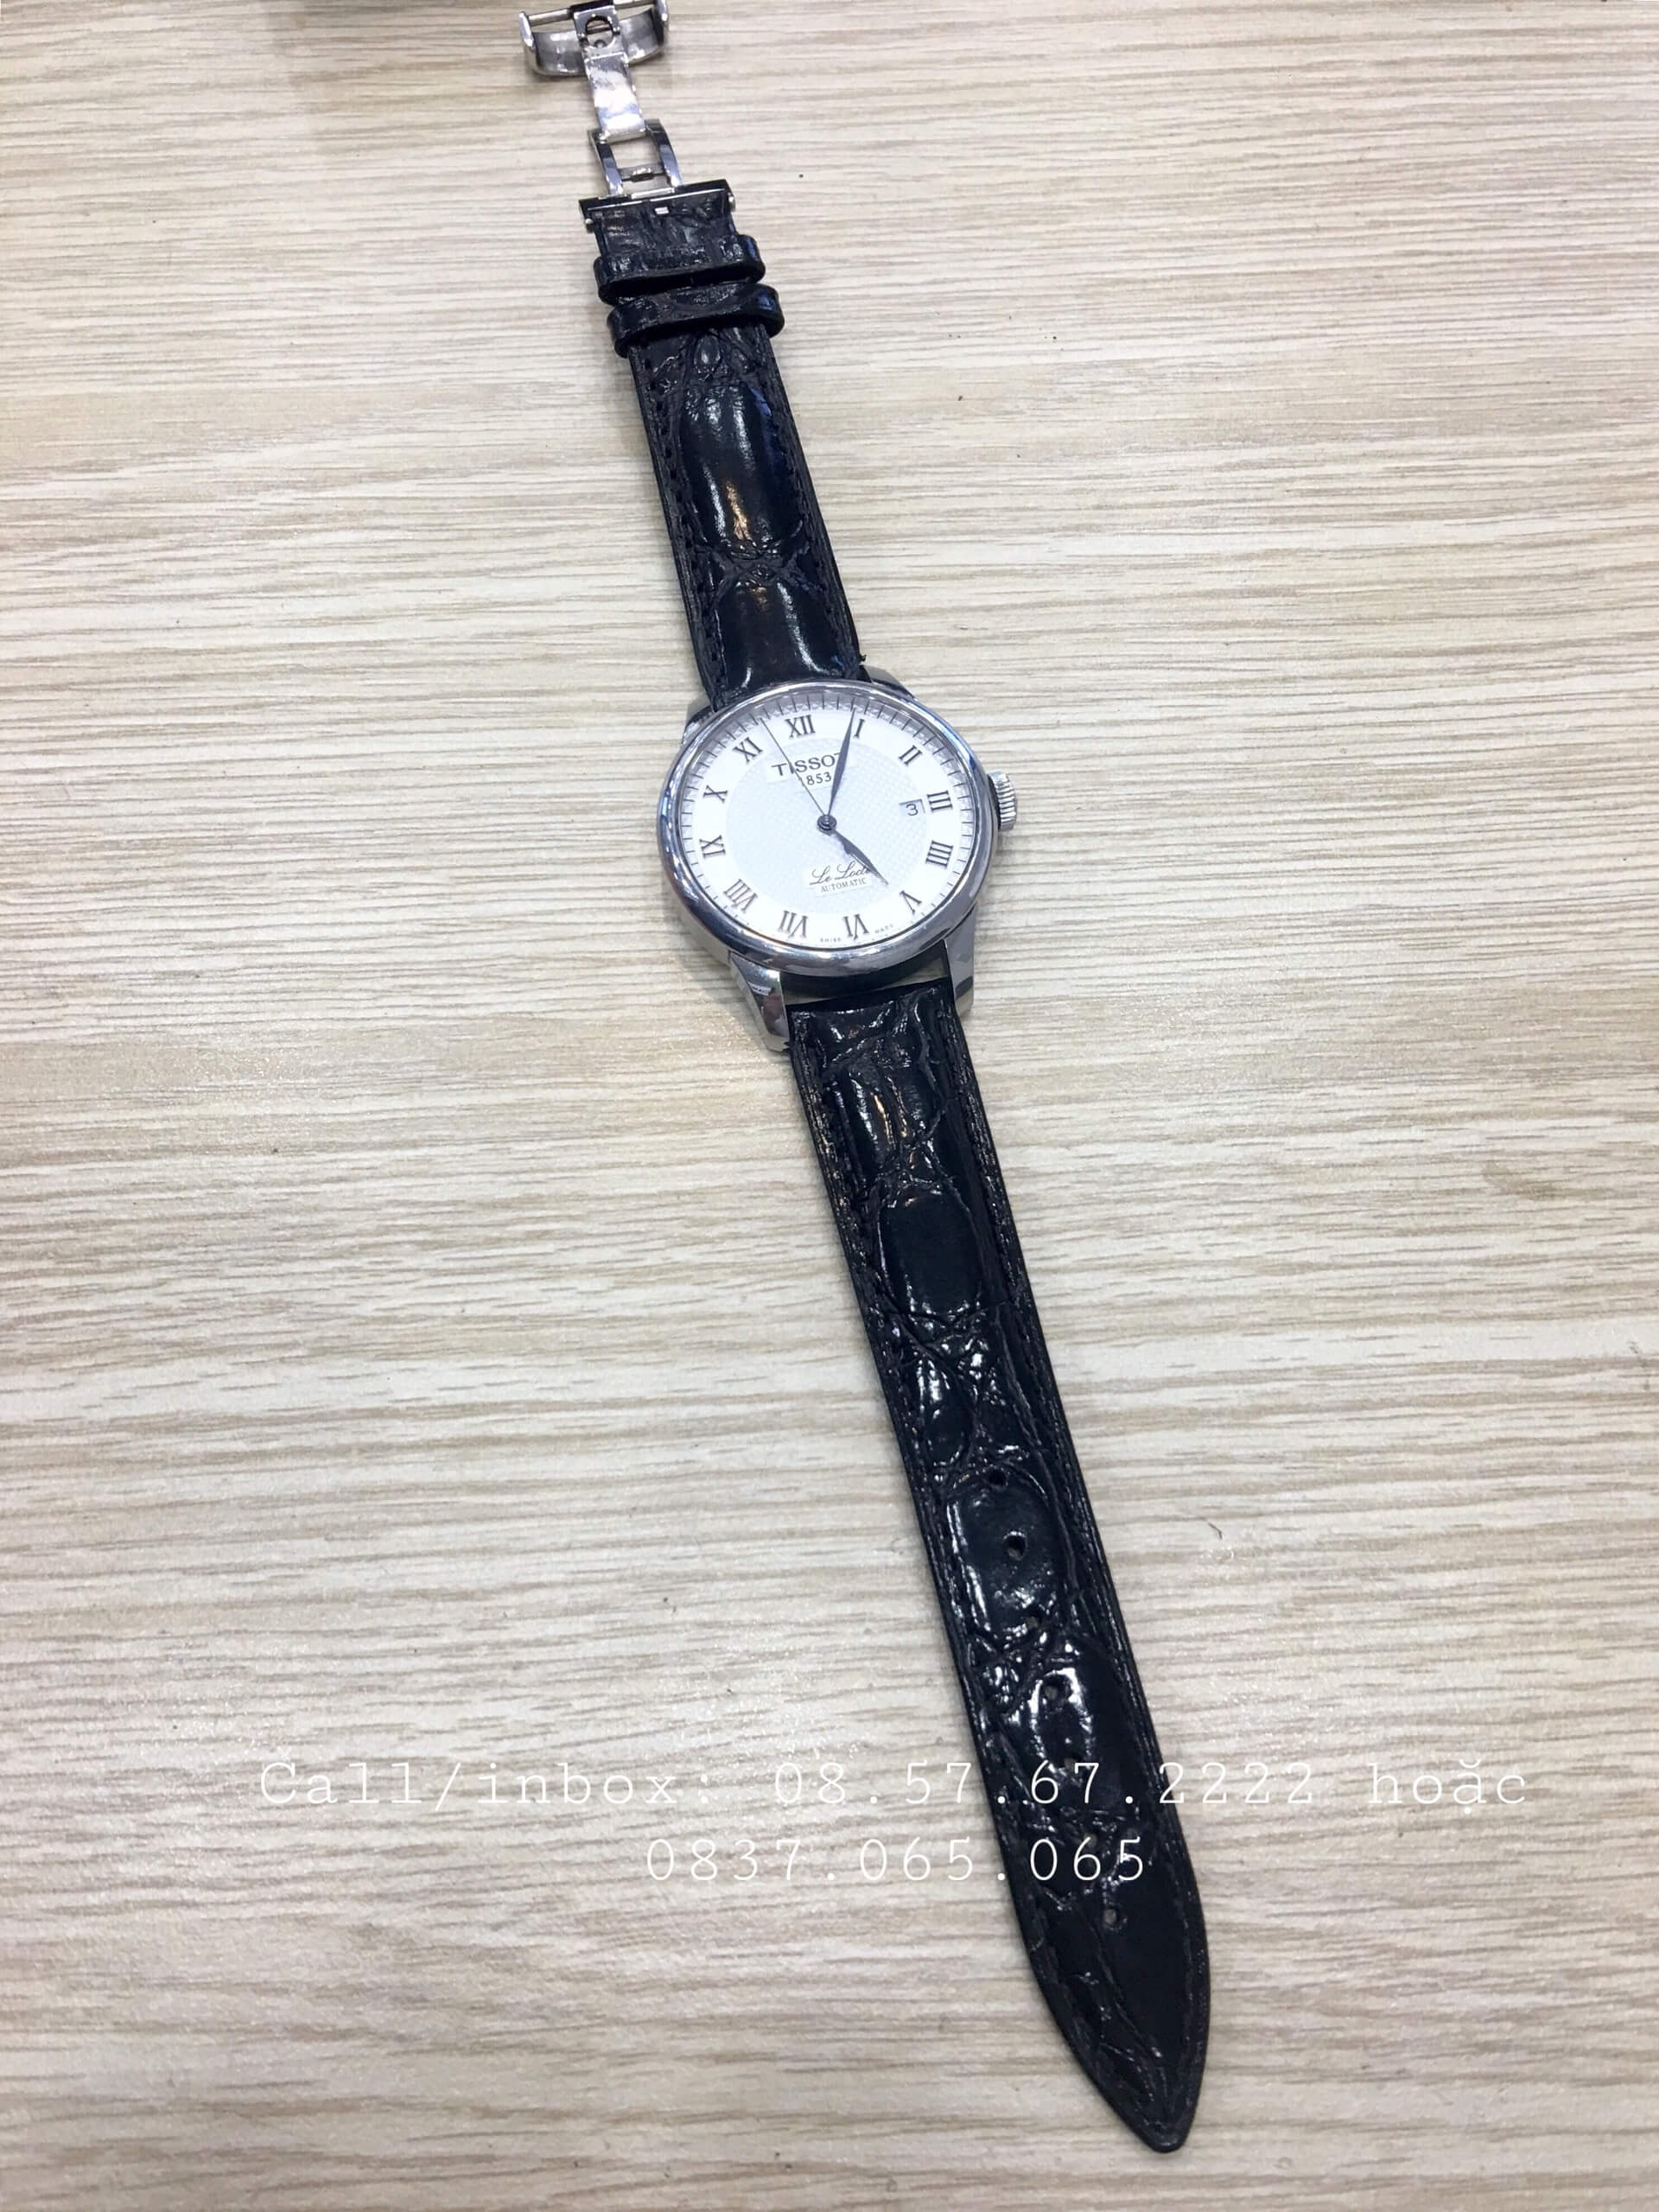 cach phoi day deo dong ho tissot 1989W5